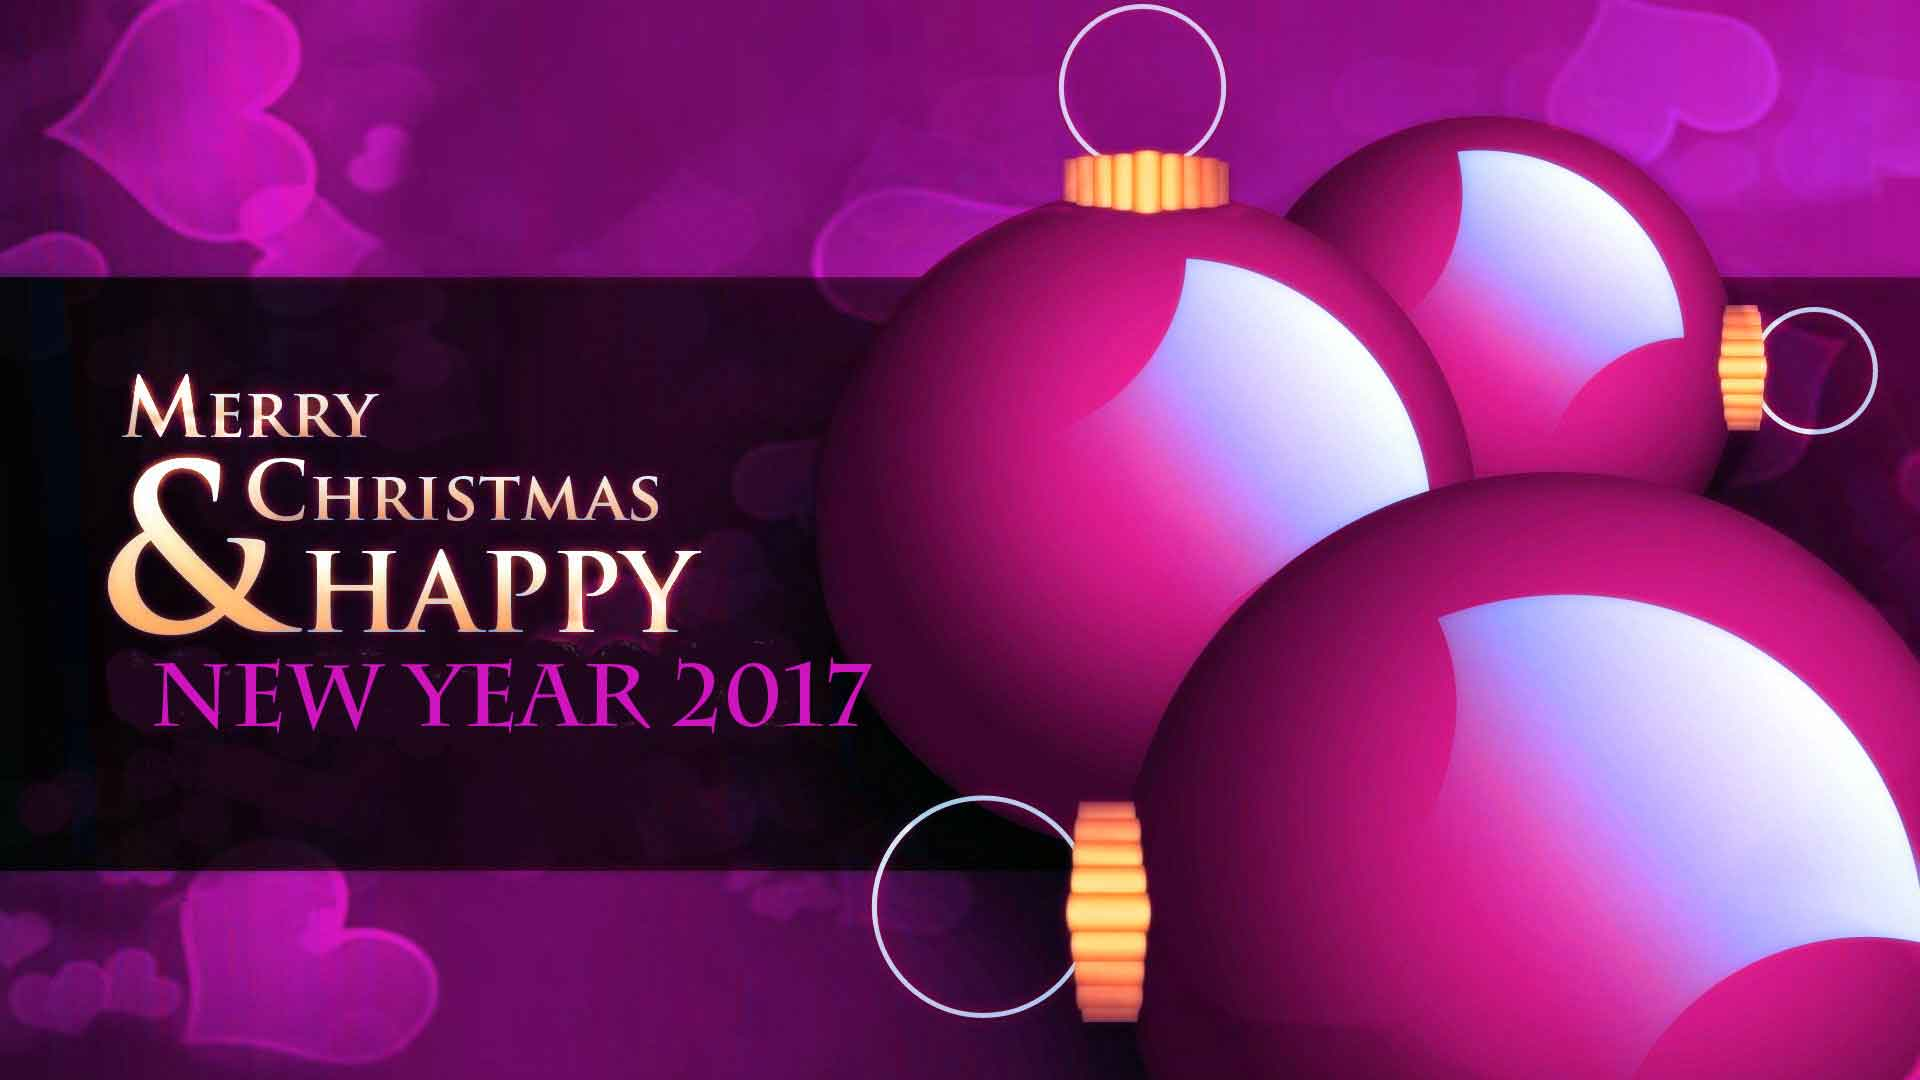 {Best}* Happy New Year 2017 HD Wallpaper - Happy New Year 2018